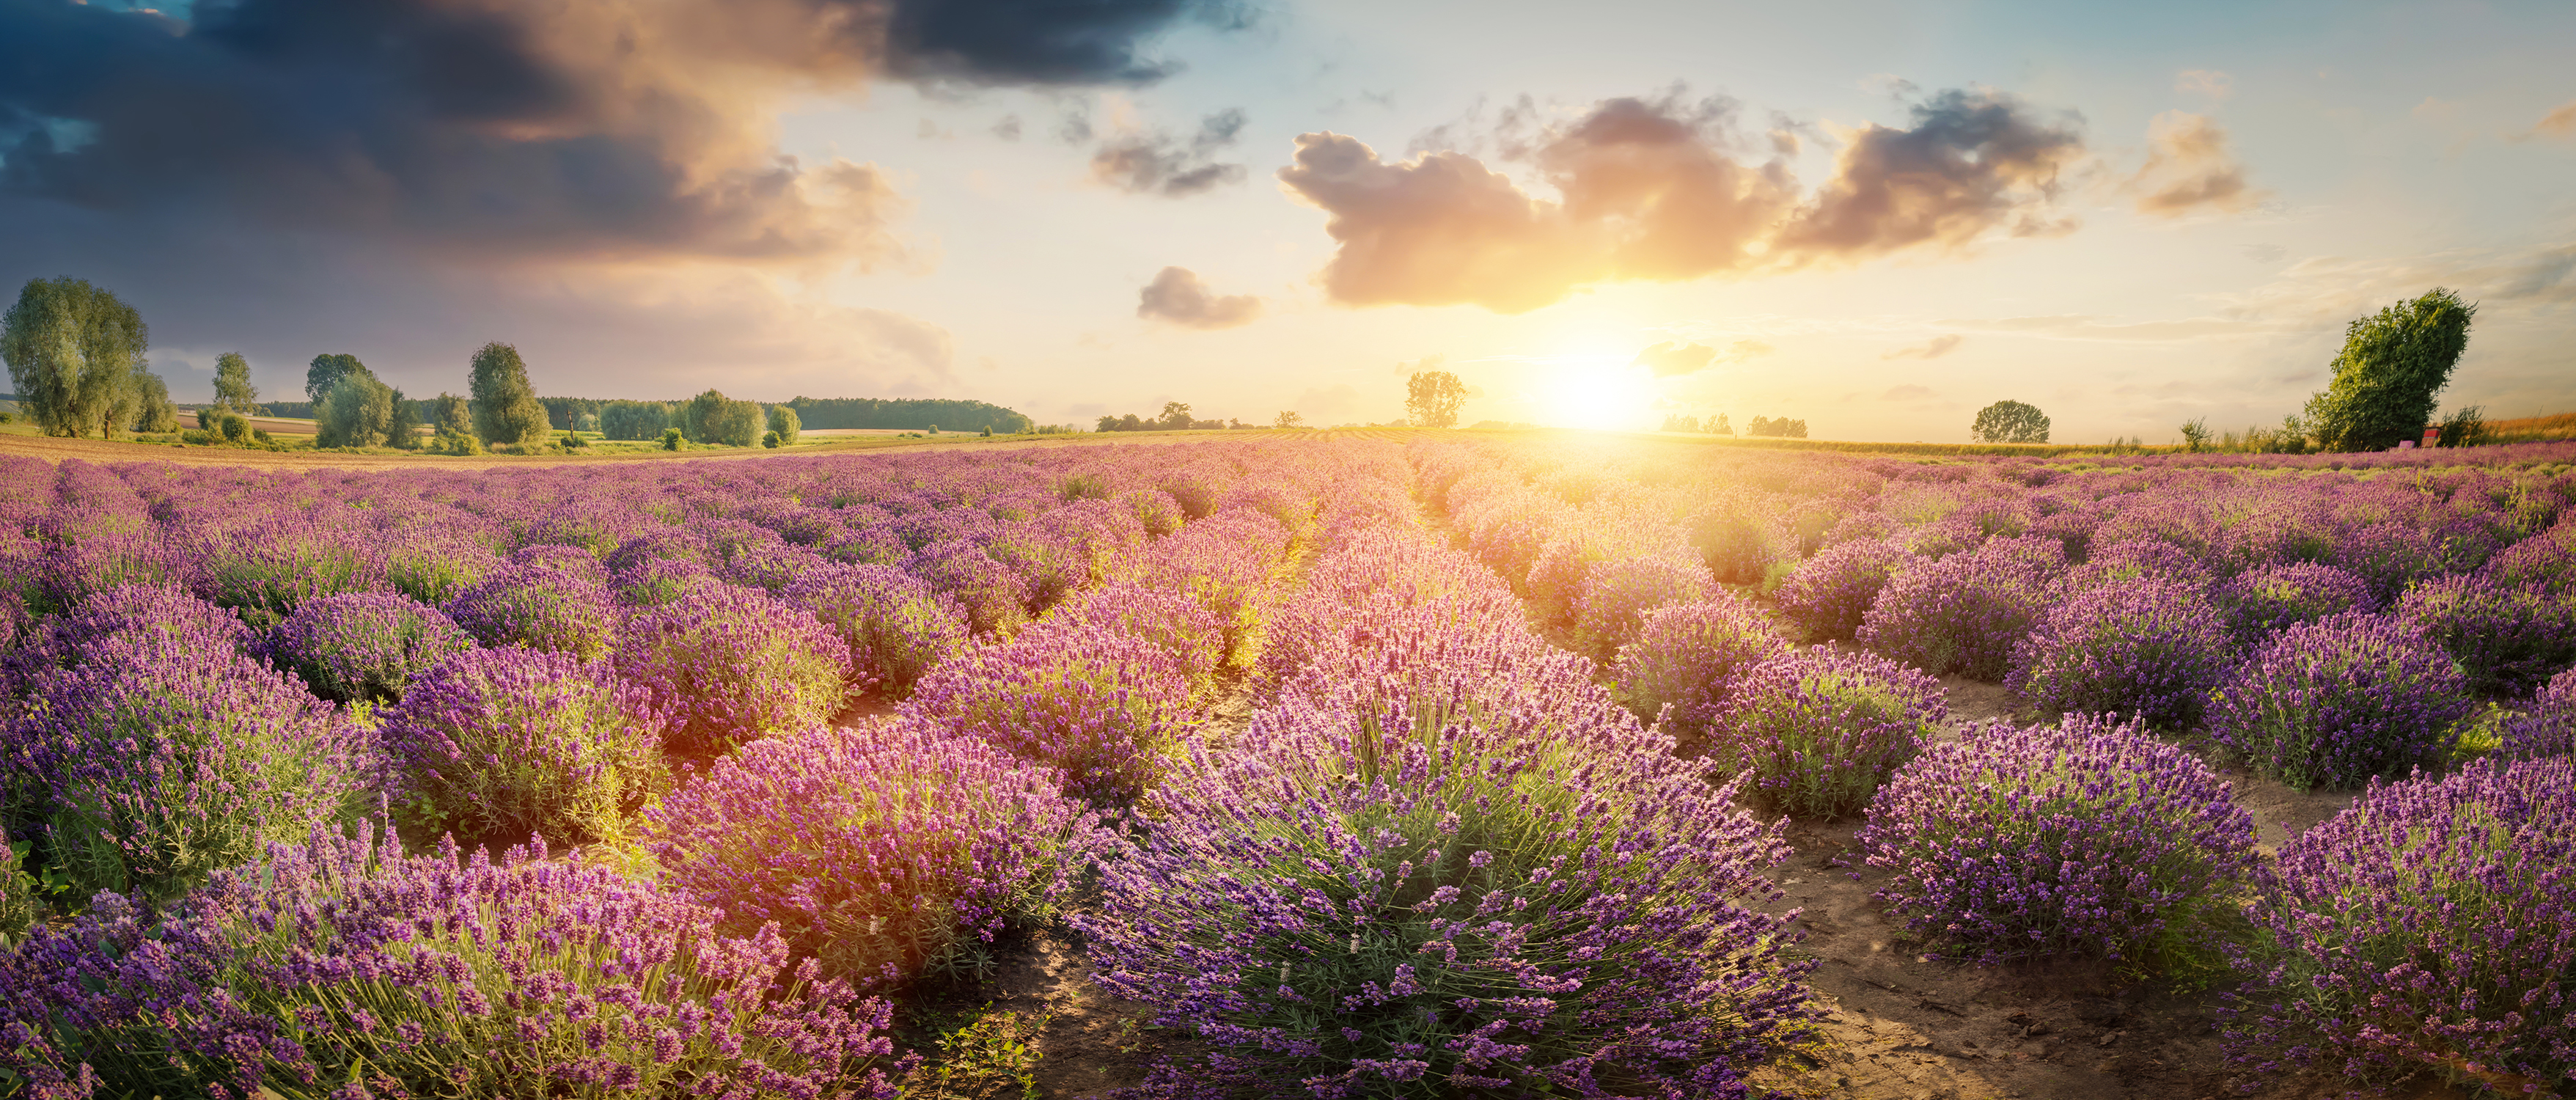 panorama-of-lavender-flower-field-at-sunset-PQEWKL3-s.jpg